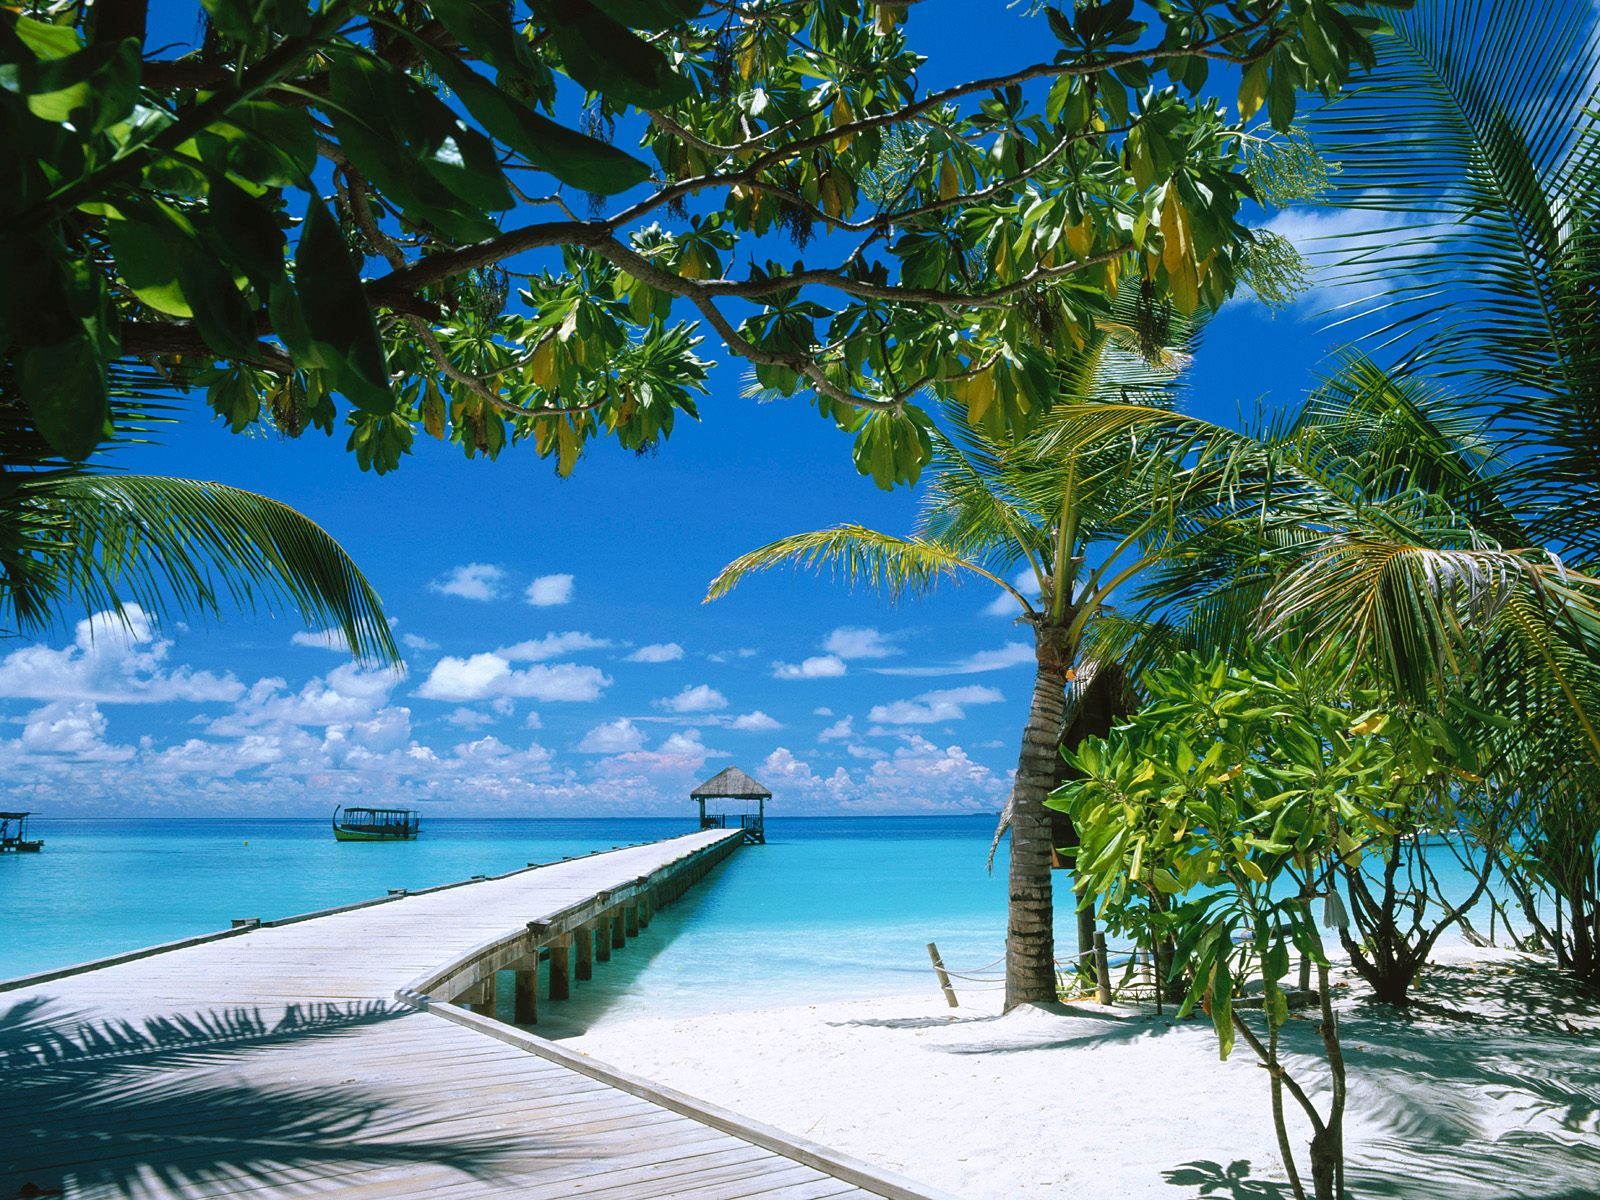 http://2.bp.blogspot.com/-opVifx5-c5I/Txi5tQRa5lI/AAAAAAAAB2o/iUtw11PdaP0/s1600/%28Maldives%29%20%E2%80%93%20Islands%20of%20the%20Maldives%206.jpg#maldives%20islands